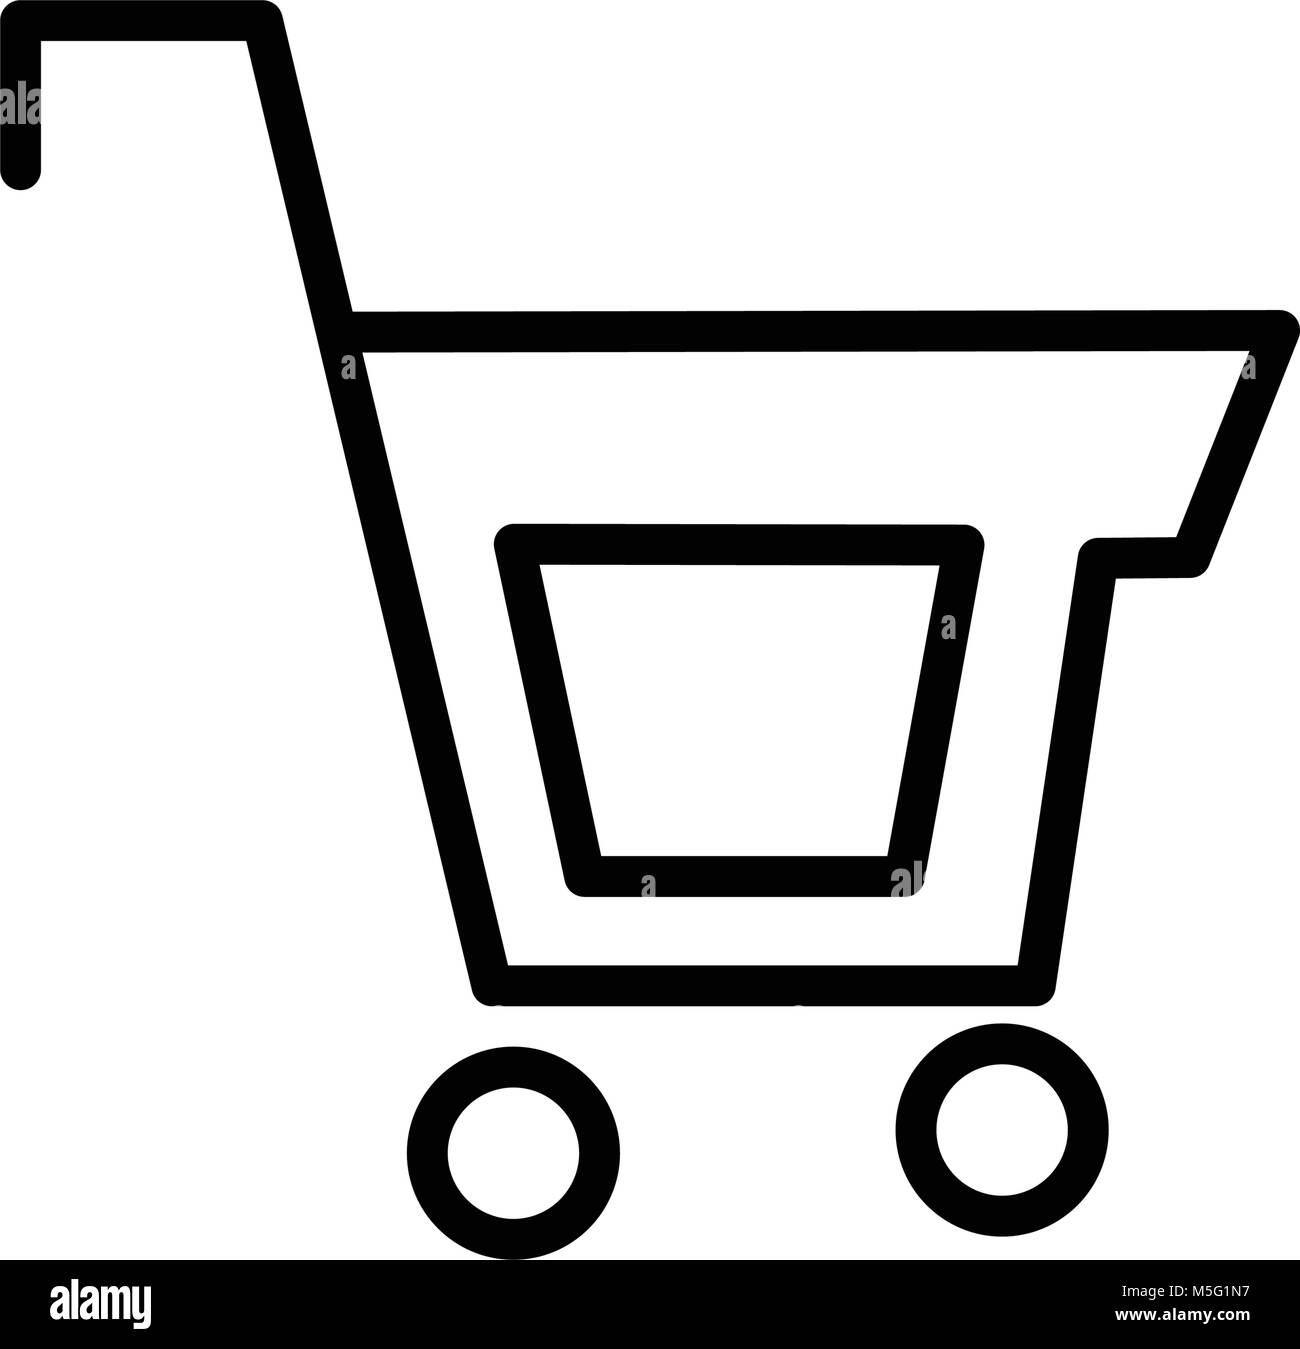 Shopping icon line outline style isolated on white background, the illustration is flat, vector, pixel perfect for - Stock Image